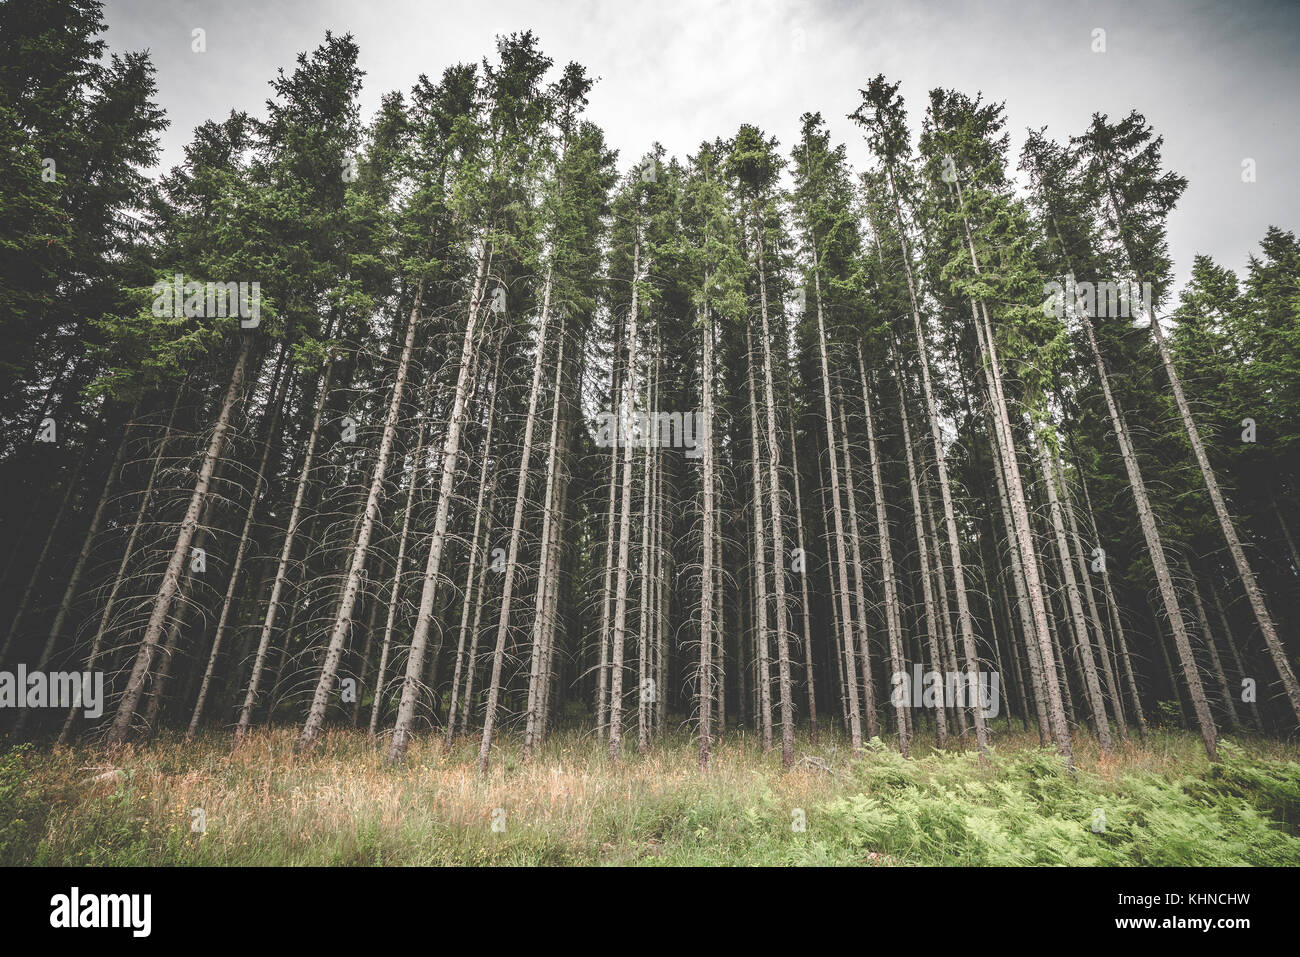 Tall pine tree forest with spooky withered branches in the dark woods in cloudy weather - Stock Image